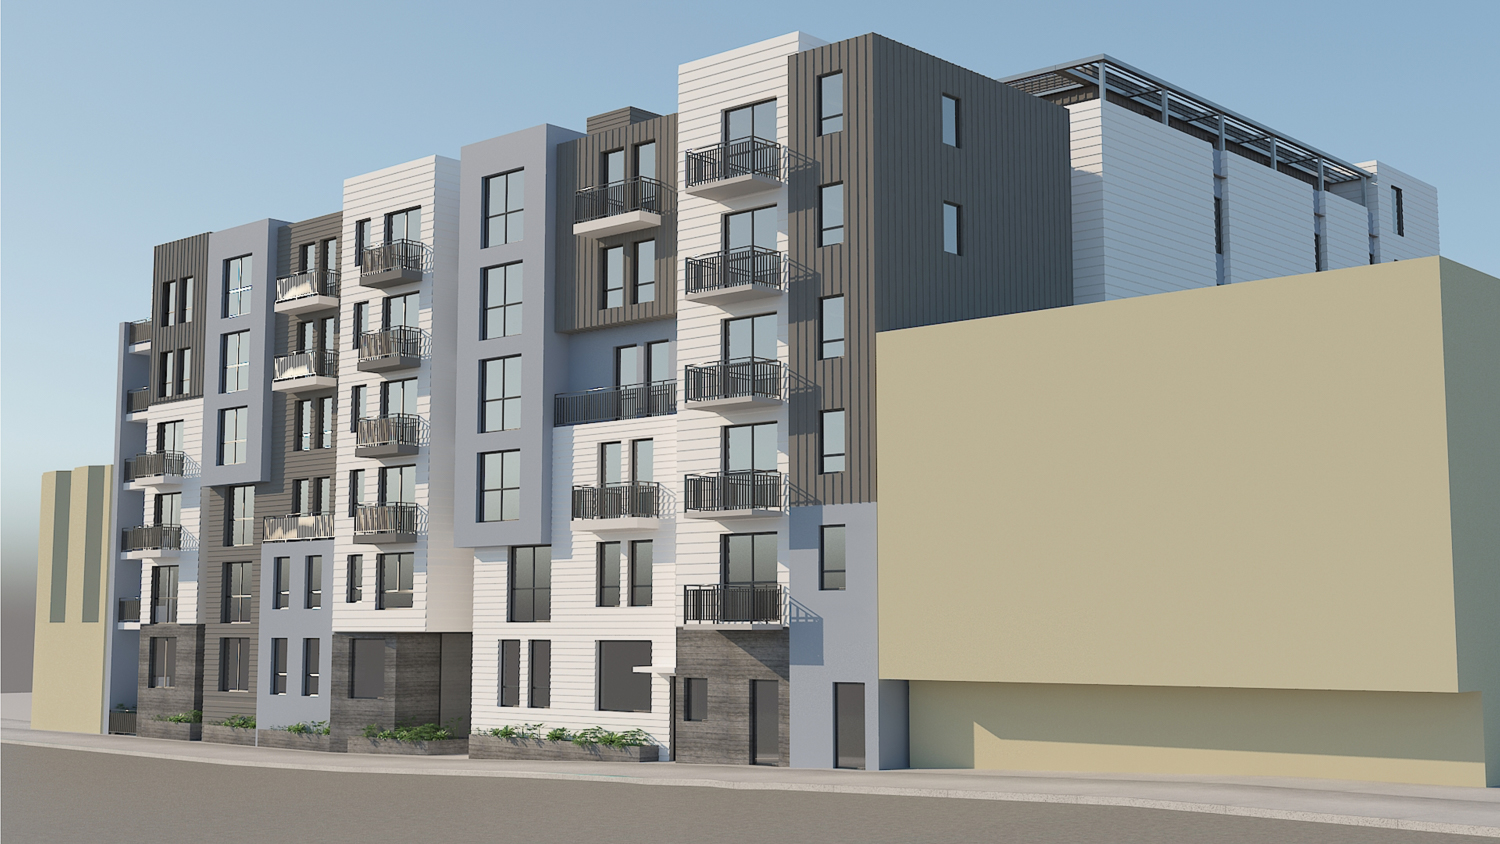 5250 3rd Street from across the street, rendering by Leavitt Architecture